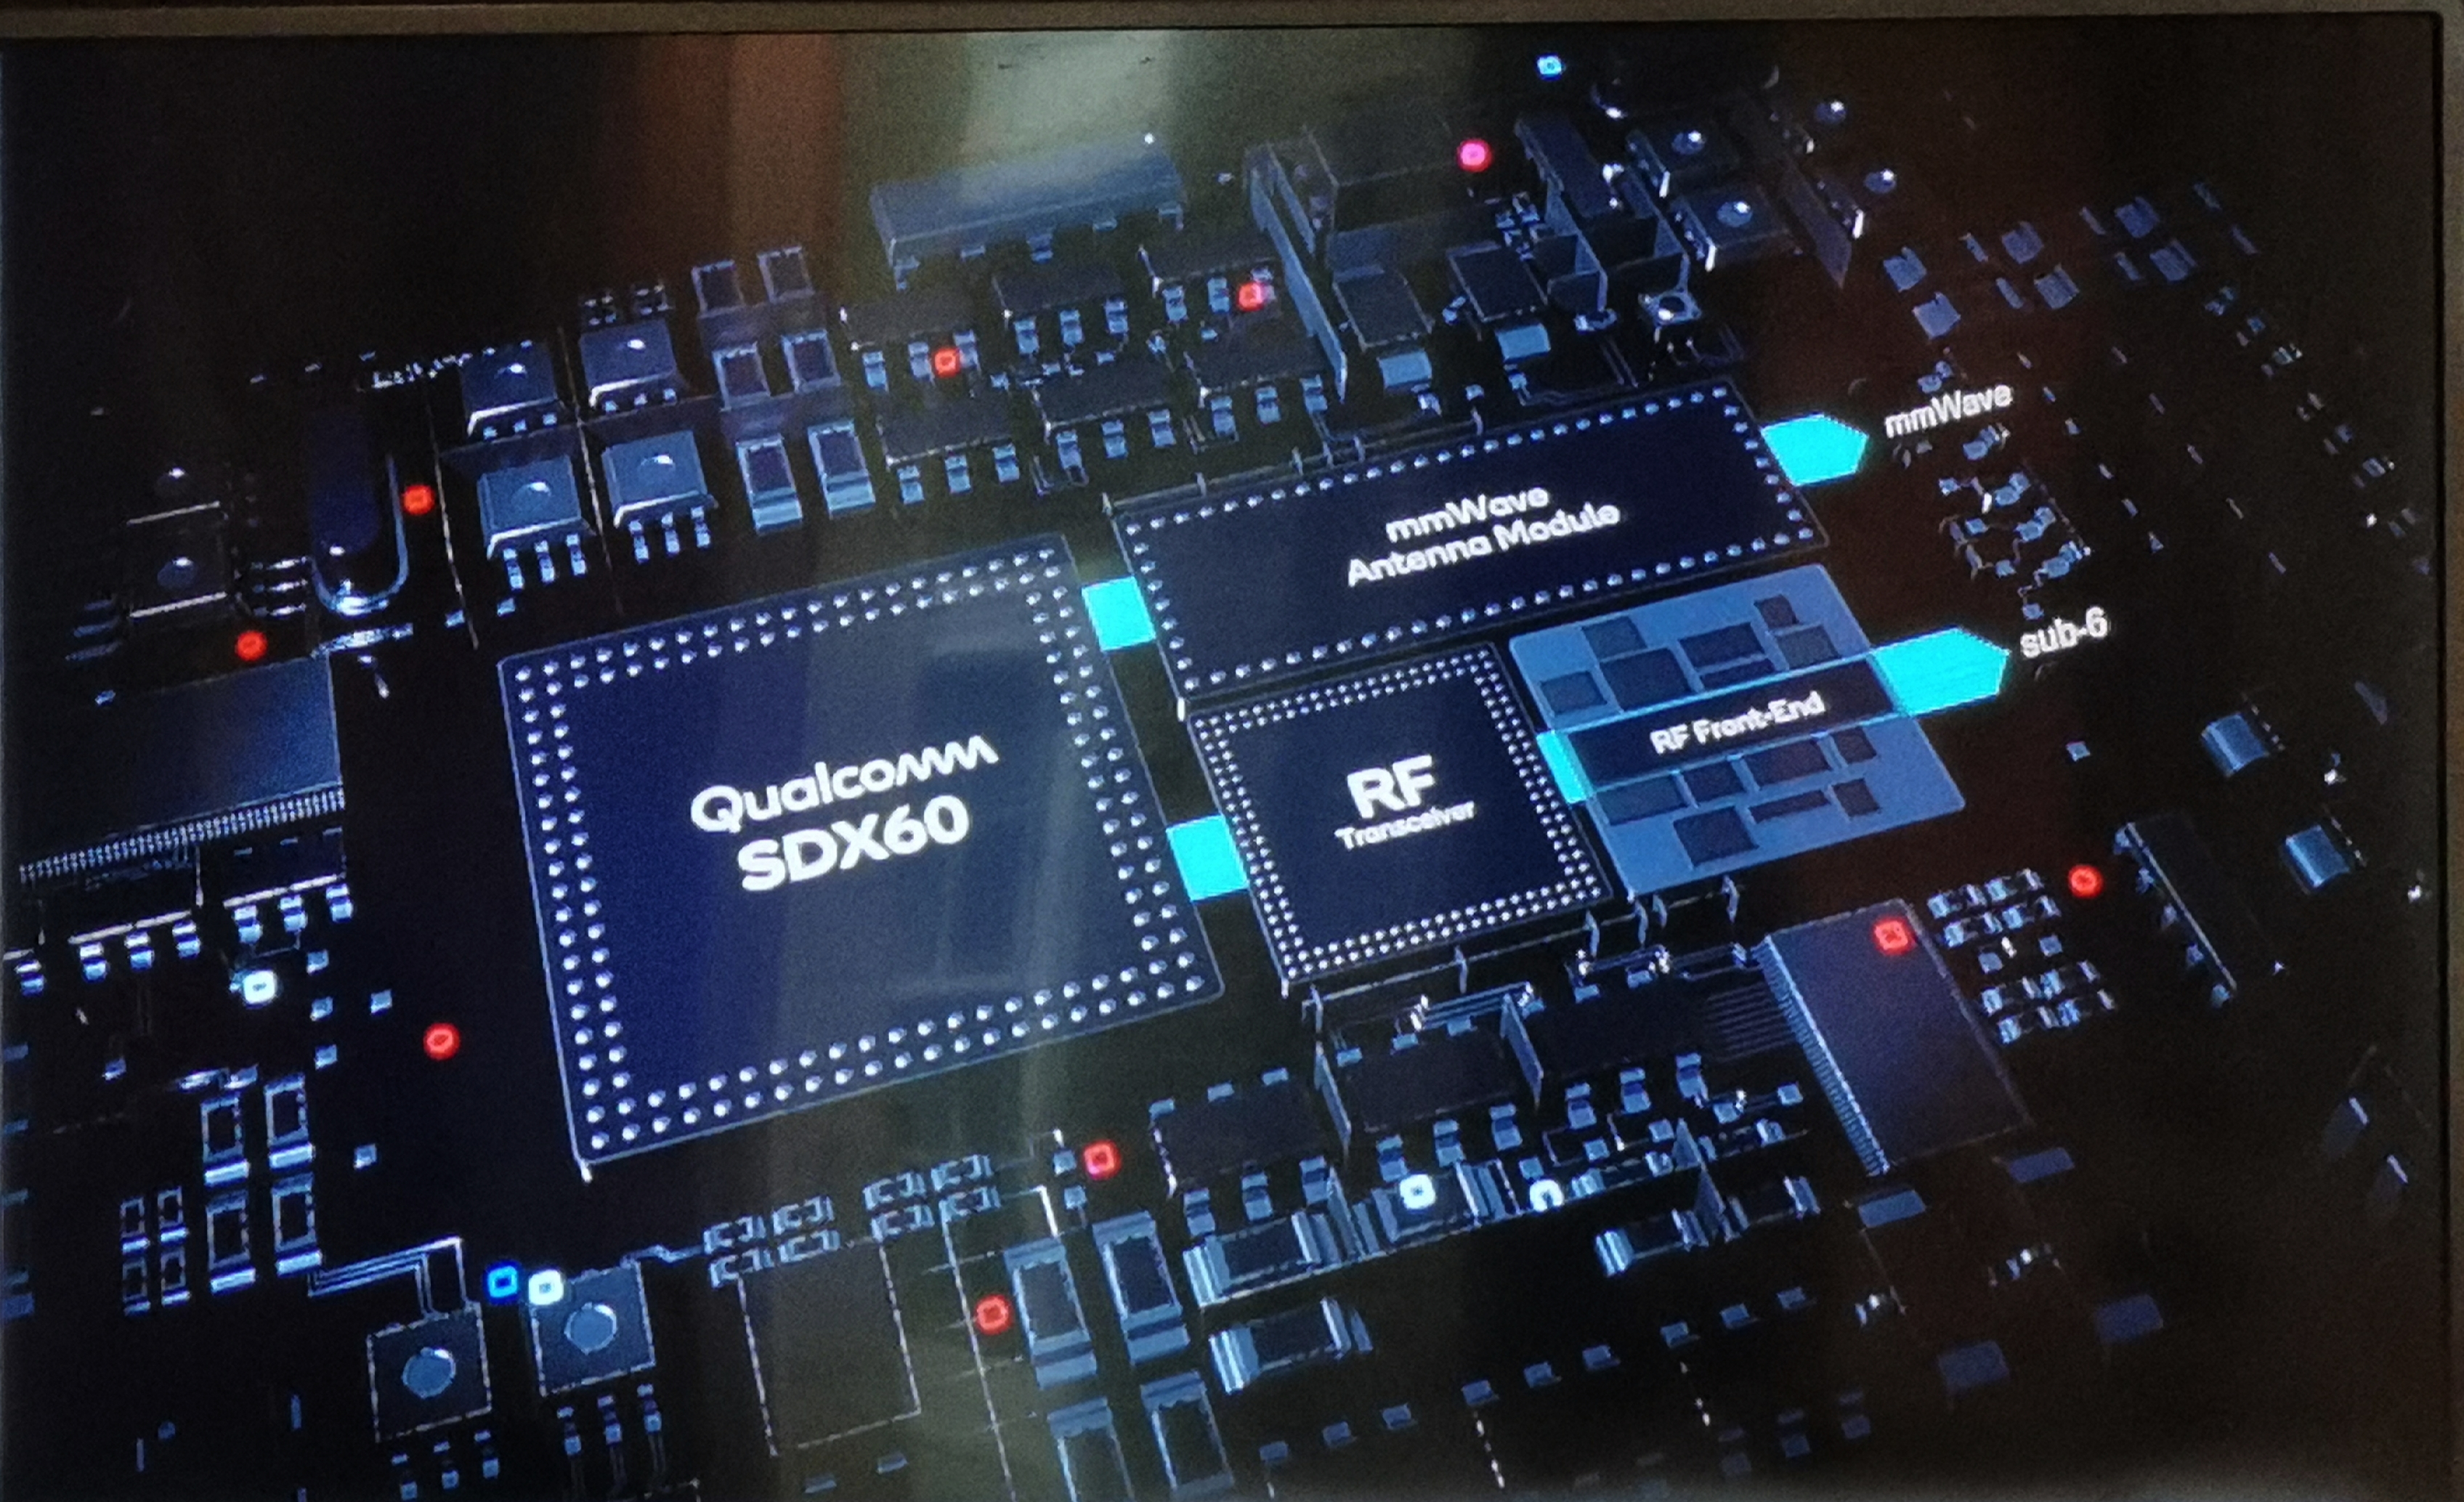 Qualcomm reveals Snapdragon X60 modem aimed squarely at 5G